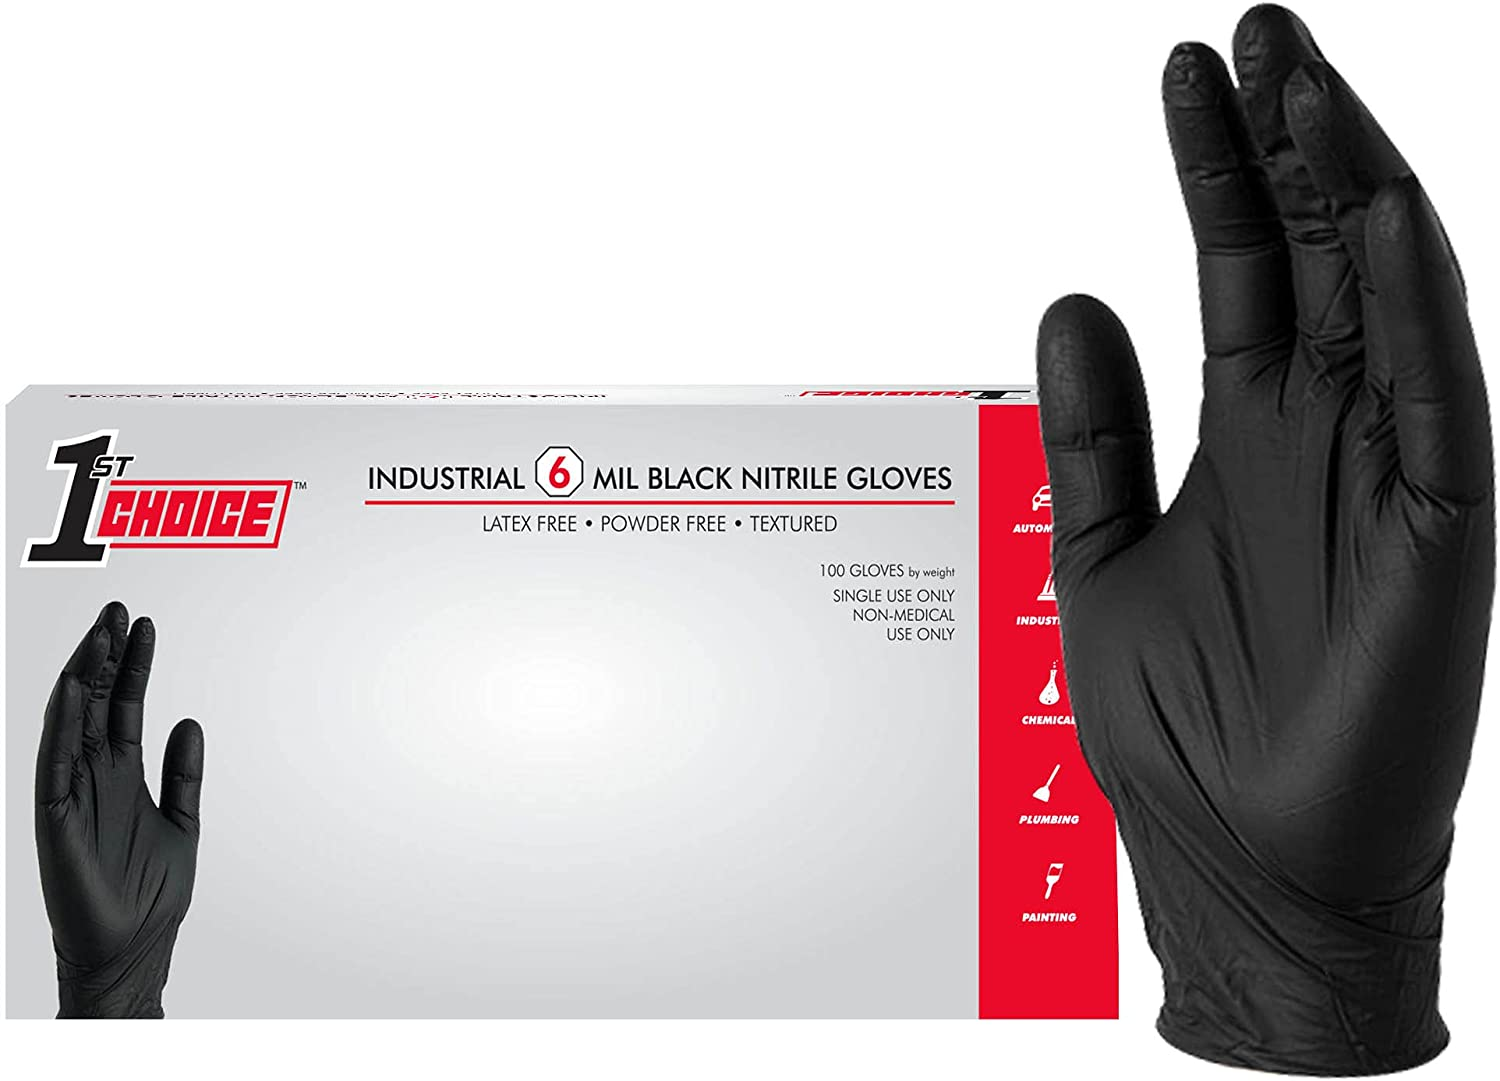 1st Choice Black Nitrile Industrial Disposable Gloves, 6 Mil, Latex & Powder-Free, Food-Safe, Textured : Health & Household